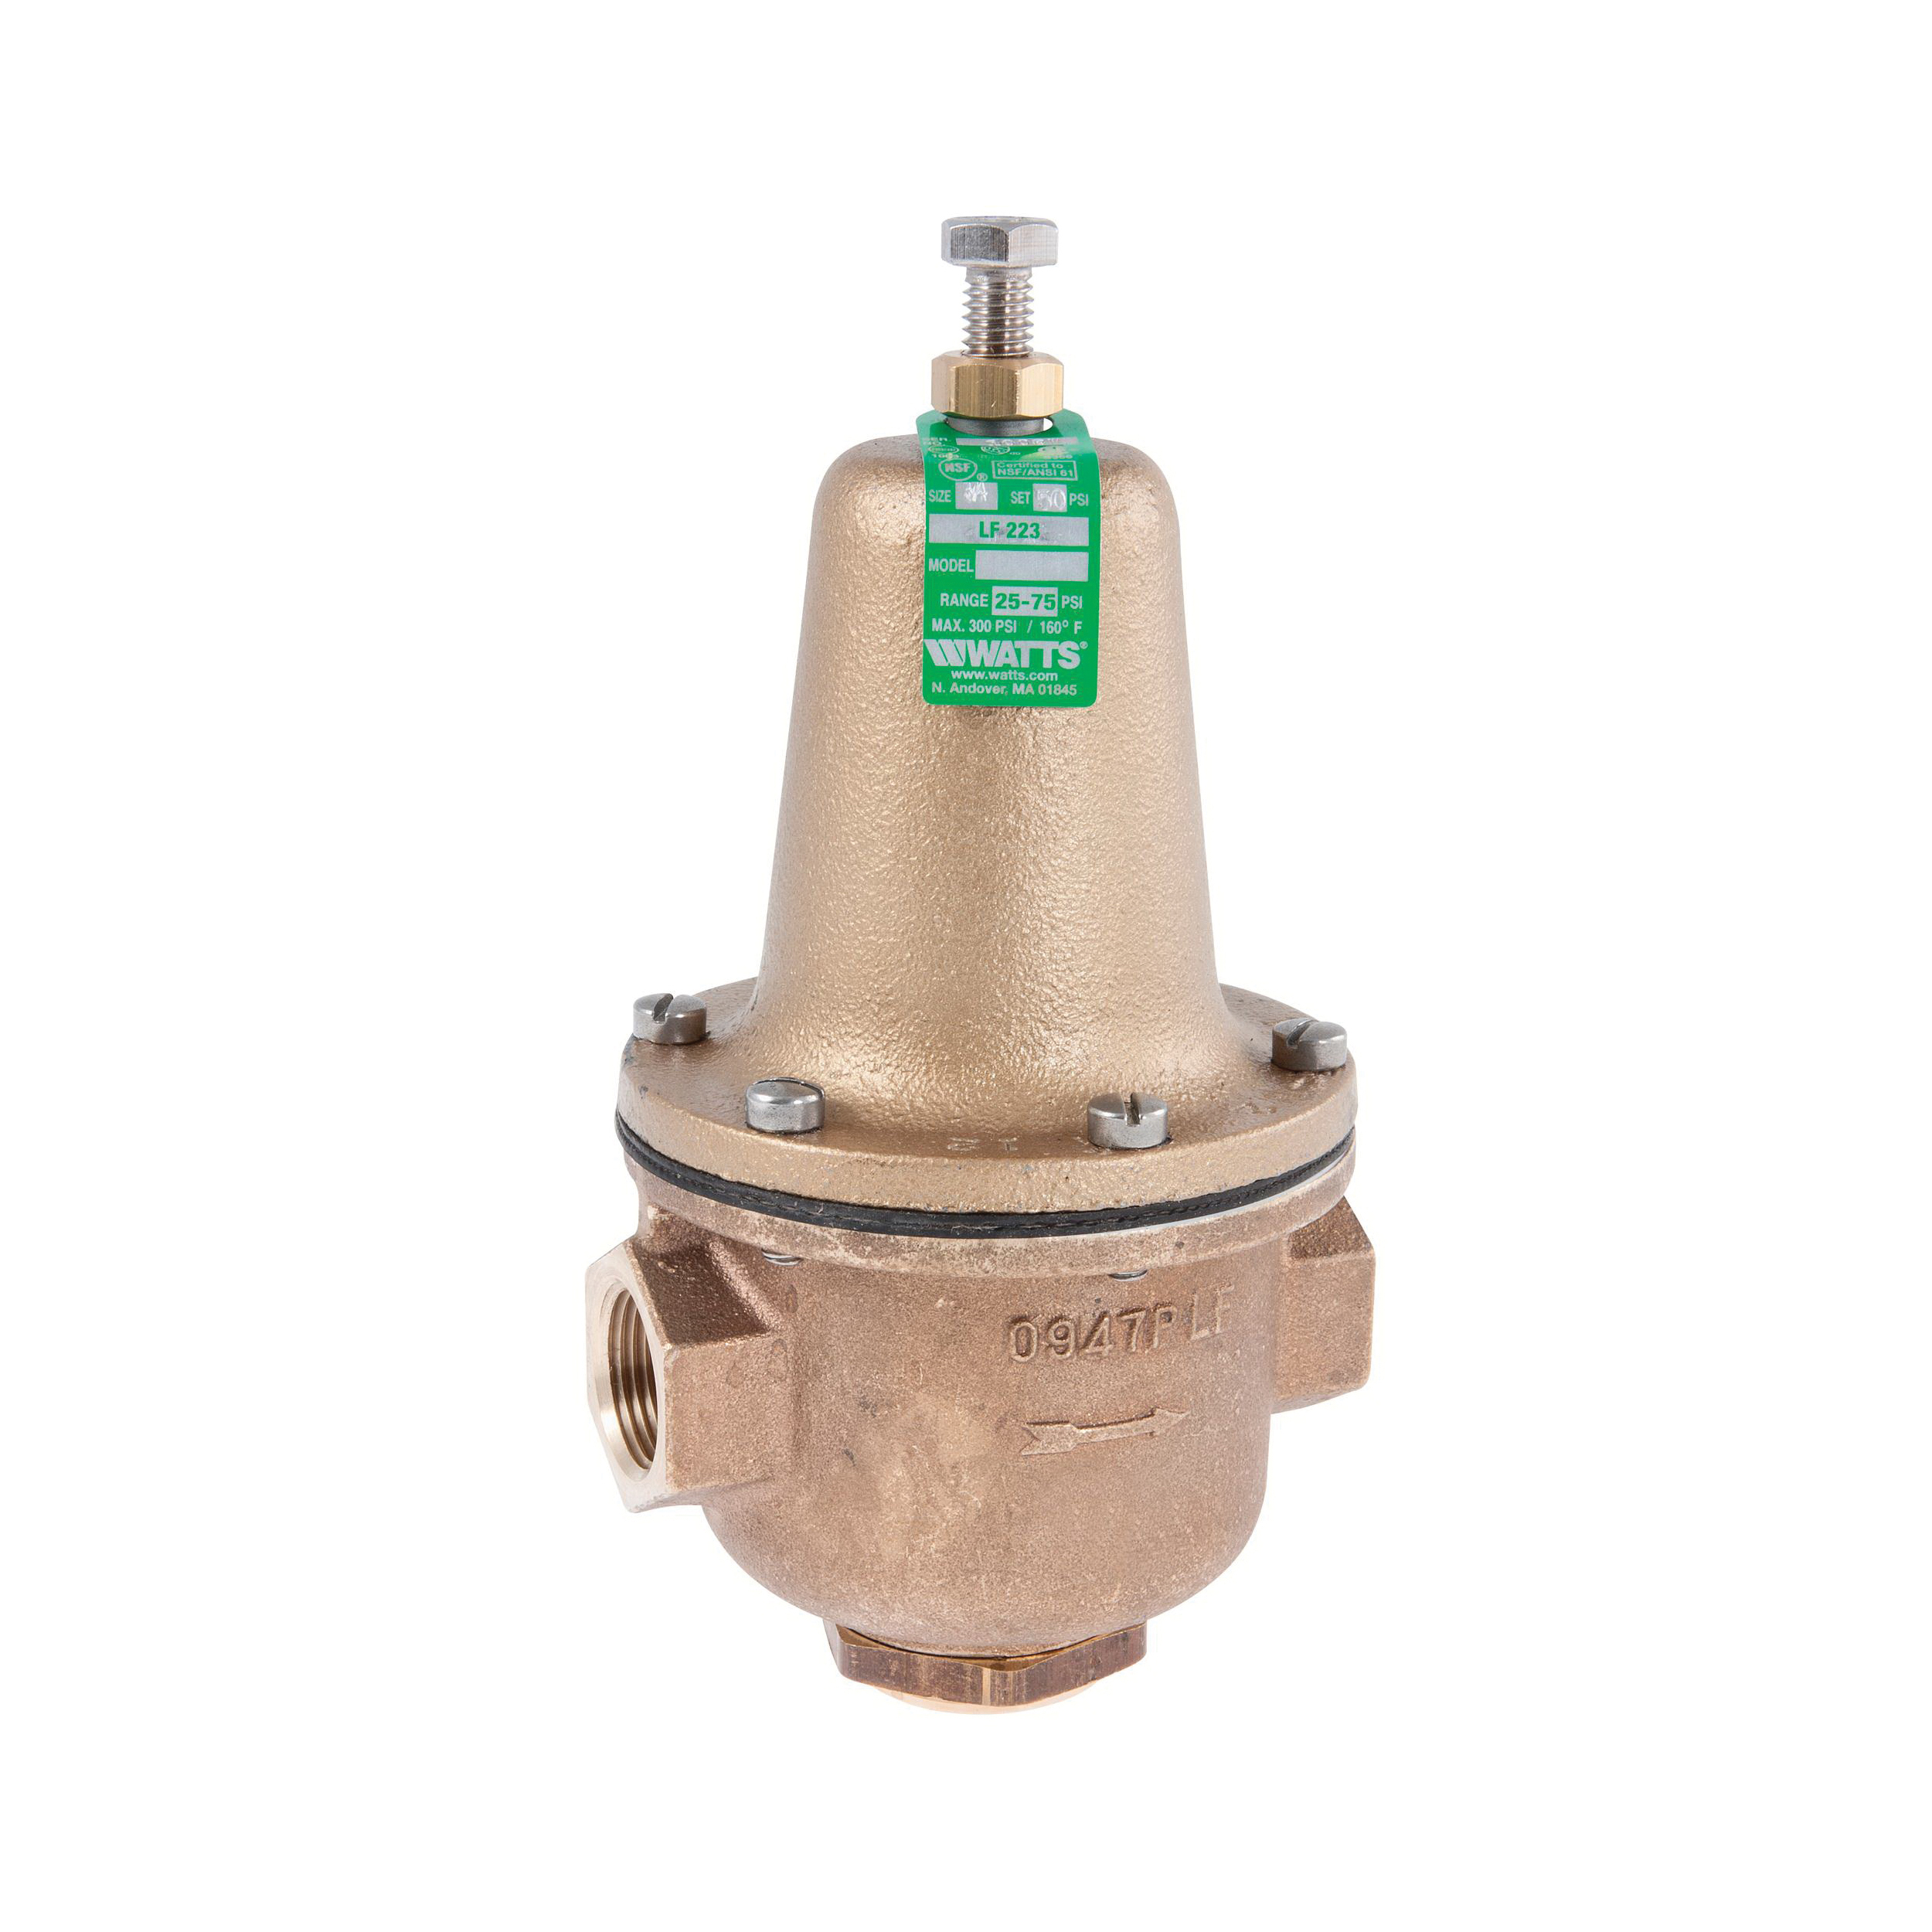 WATTS® 0298522 LF223 High Capacity Pressure Reducing Valve, 3/4 in, FNPT, 300 psi Working, Brass Body